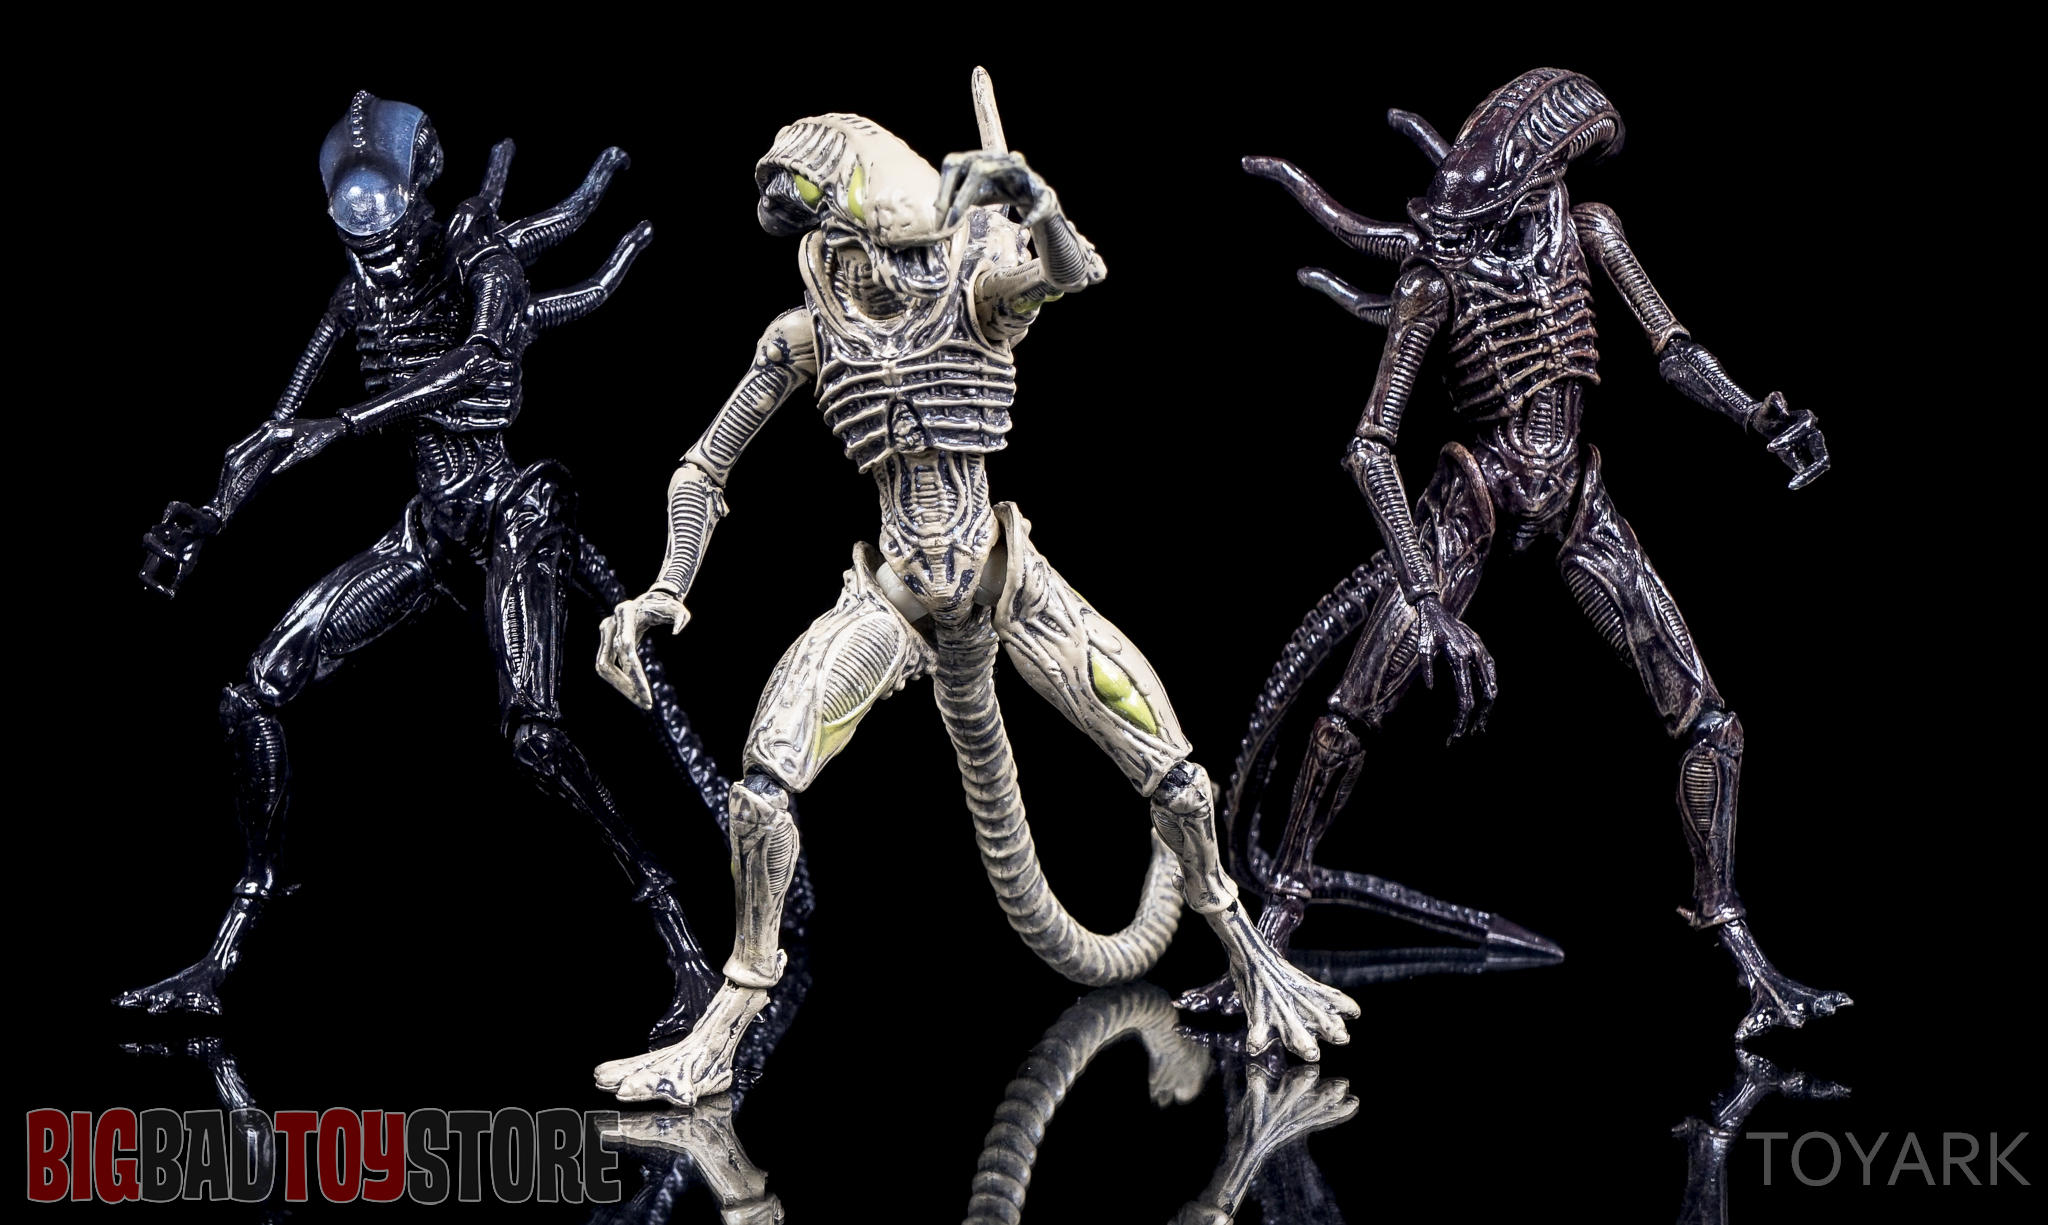 http://news.toyark.com/wp-content/uploads/sites/4/2016/07/Hiya-Toys-Aliens-080.jpg